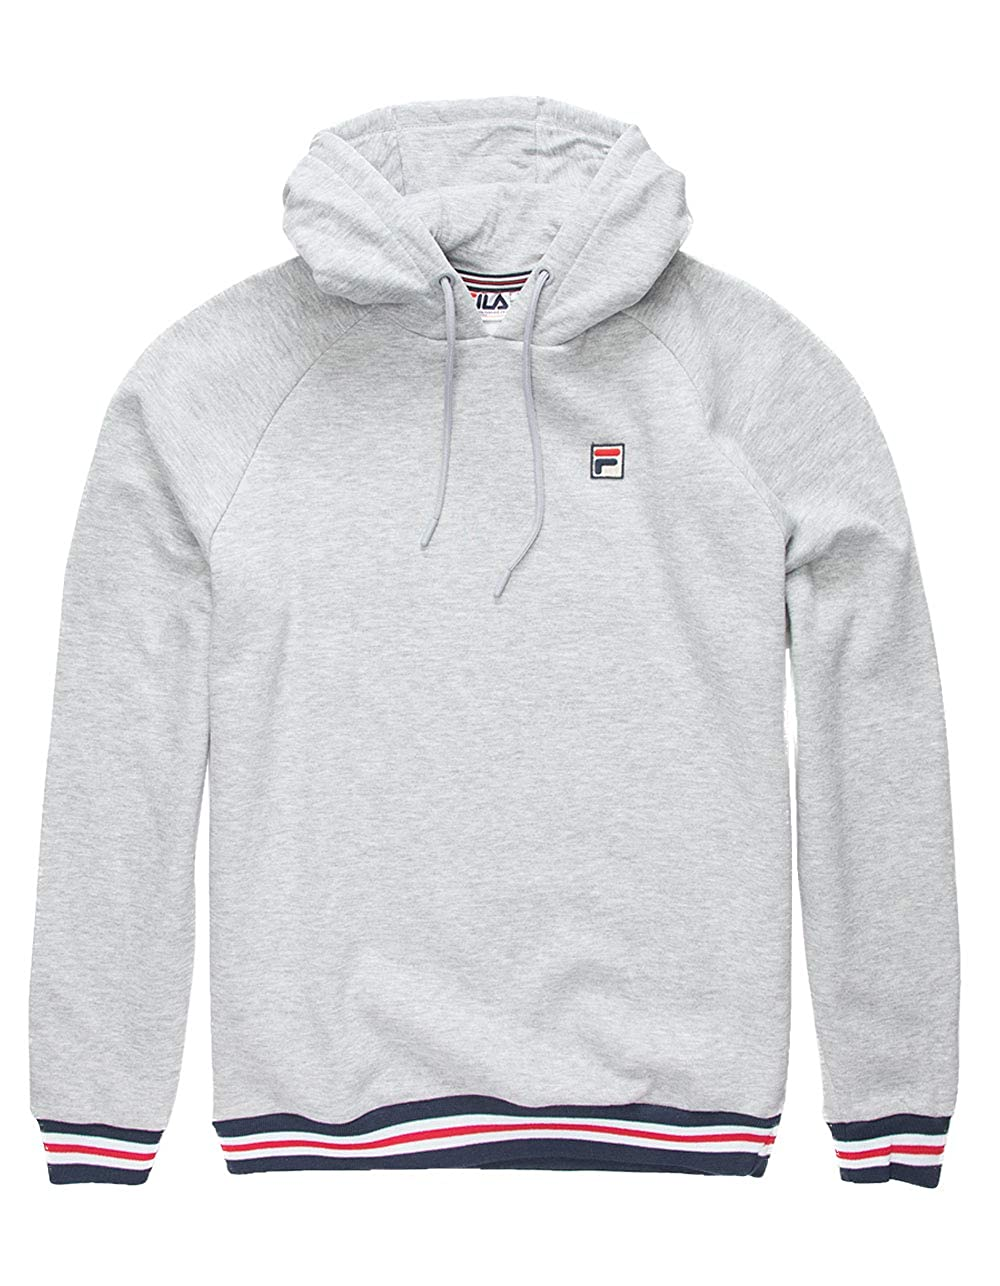 061552d1 Amazon.com: Fila Men's Jordan Vintage College Hoodie: Clothing